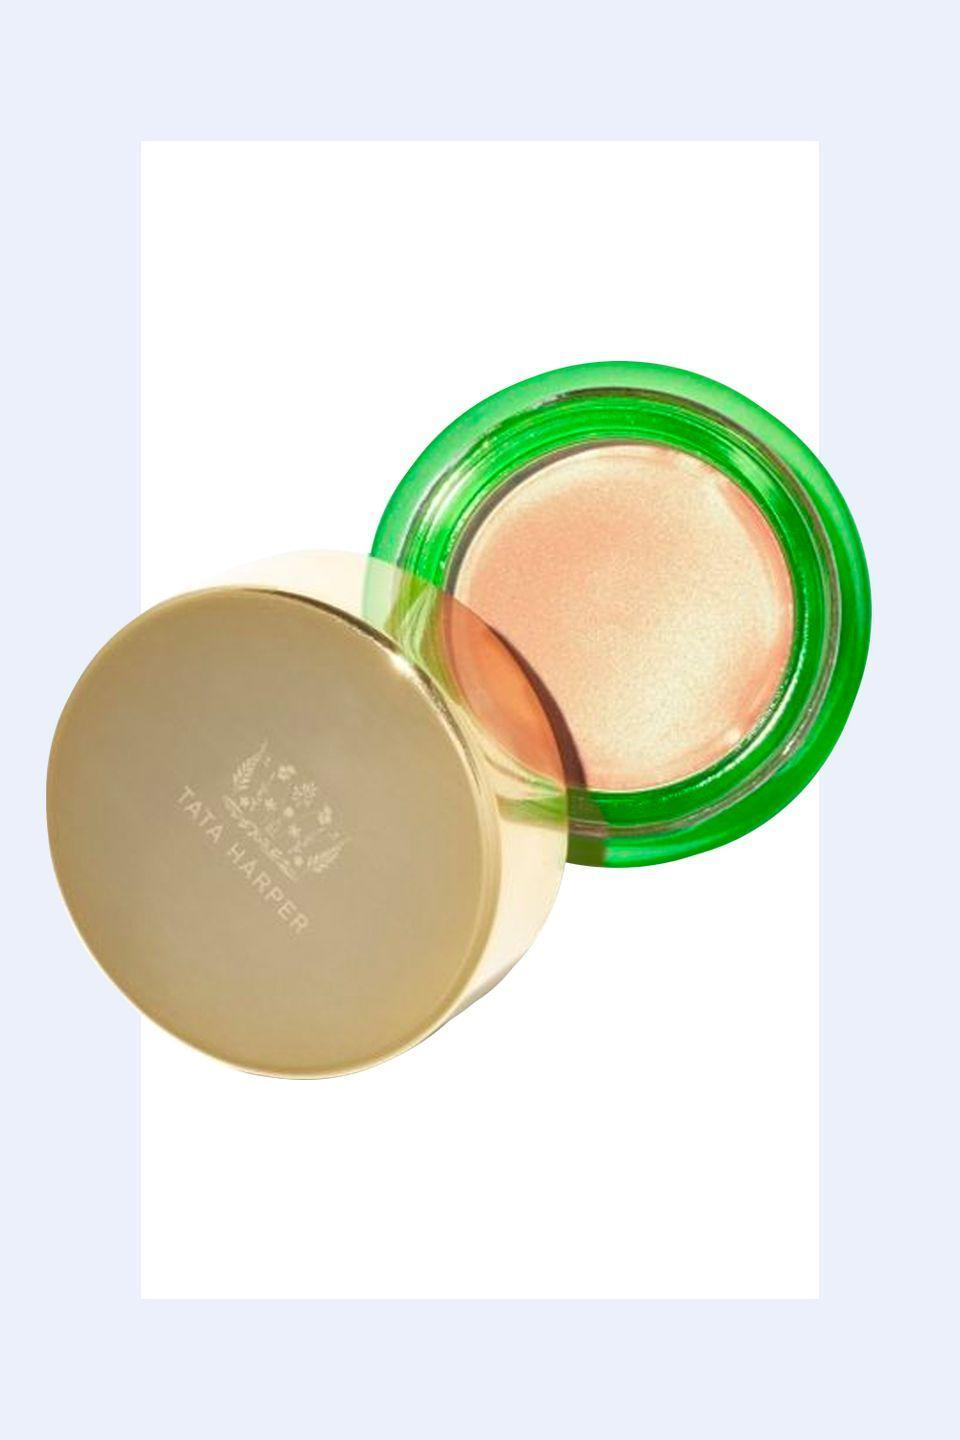 """<p>""""Warmer tones of <strong>highlighter with sheen and light reflection</strong> generally work better as we age. Apply it to you upper cheek bones and the décolletage area, not you whole face.""""—<em>Jillian Dempsey, celebrity makeup artist and founder of Jillian Dempsey.</em></p>"""